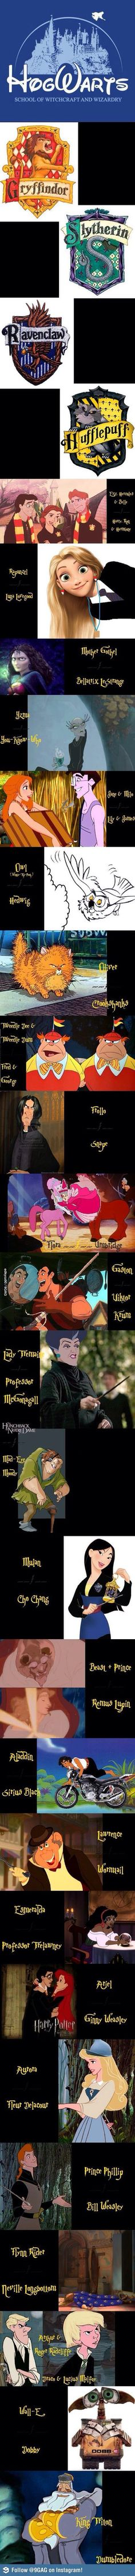 Disney characters in Harry Potter